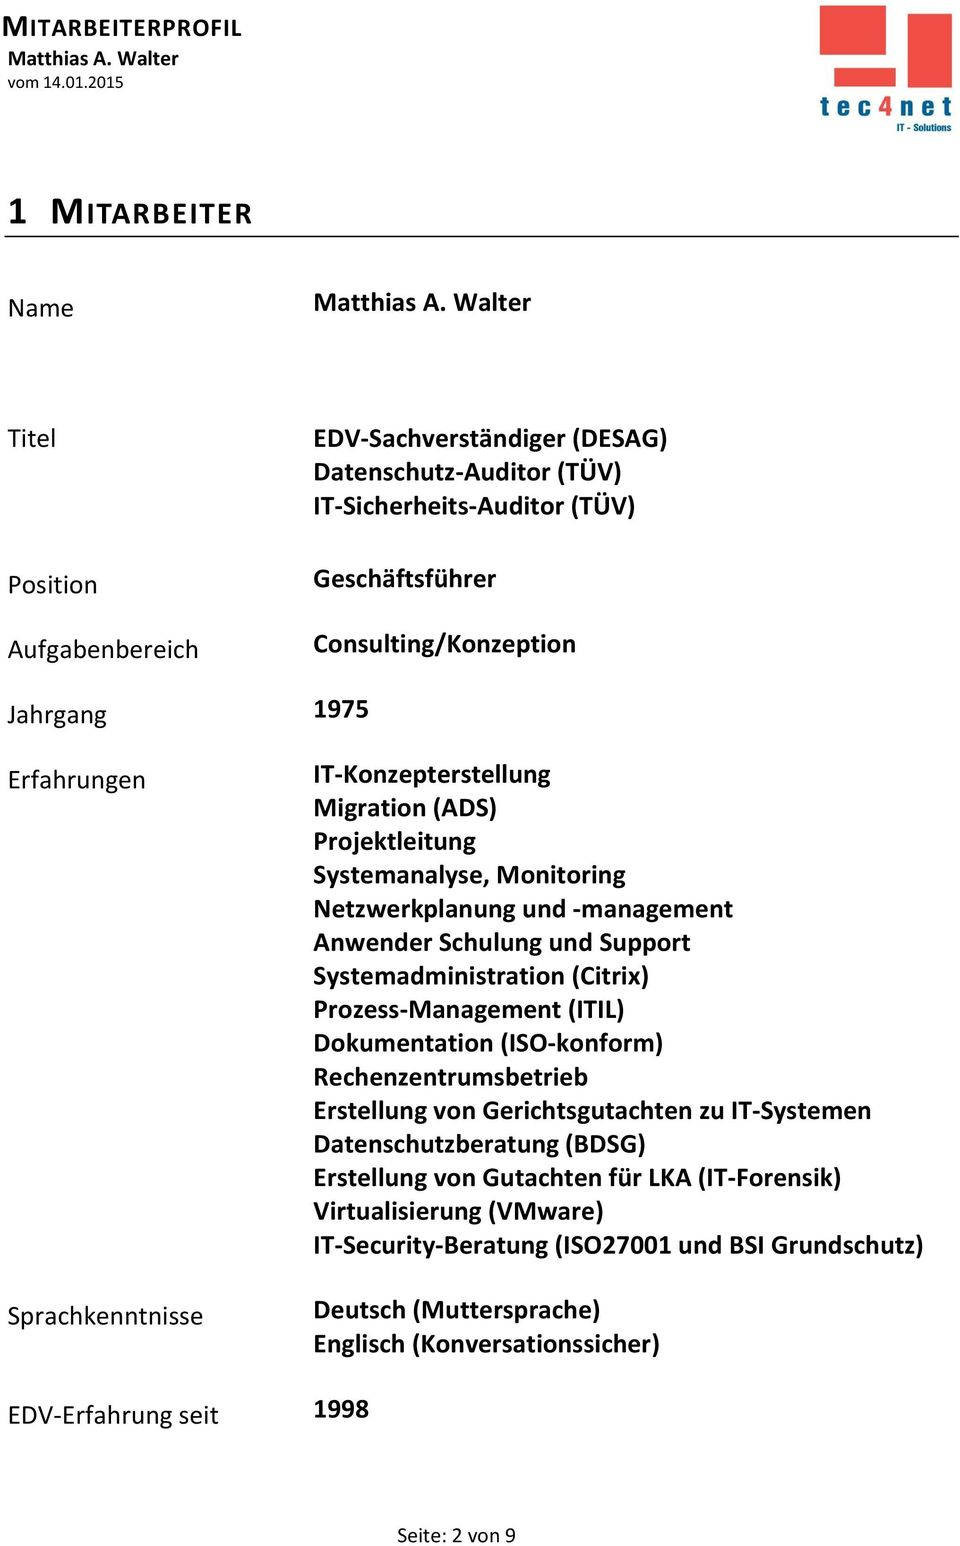 Systemadministration (Citrix) Prozess-Management (ITIL) Dokumentation (ISO-konform) Rechenzentrumsbetrieb Erstellung von Gerichtsgutachten zu IT-Systemen Datenschutzberatung (BDSG)